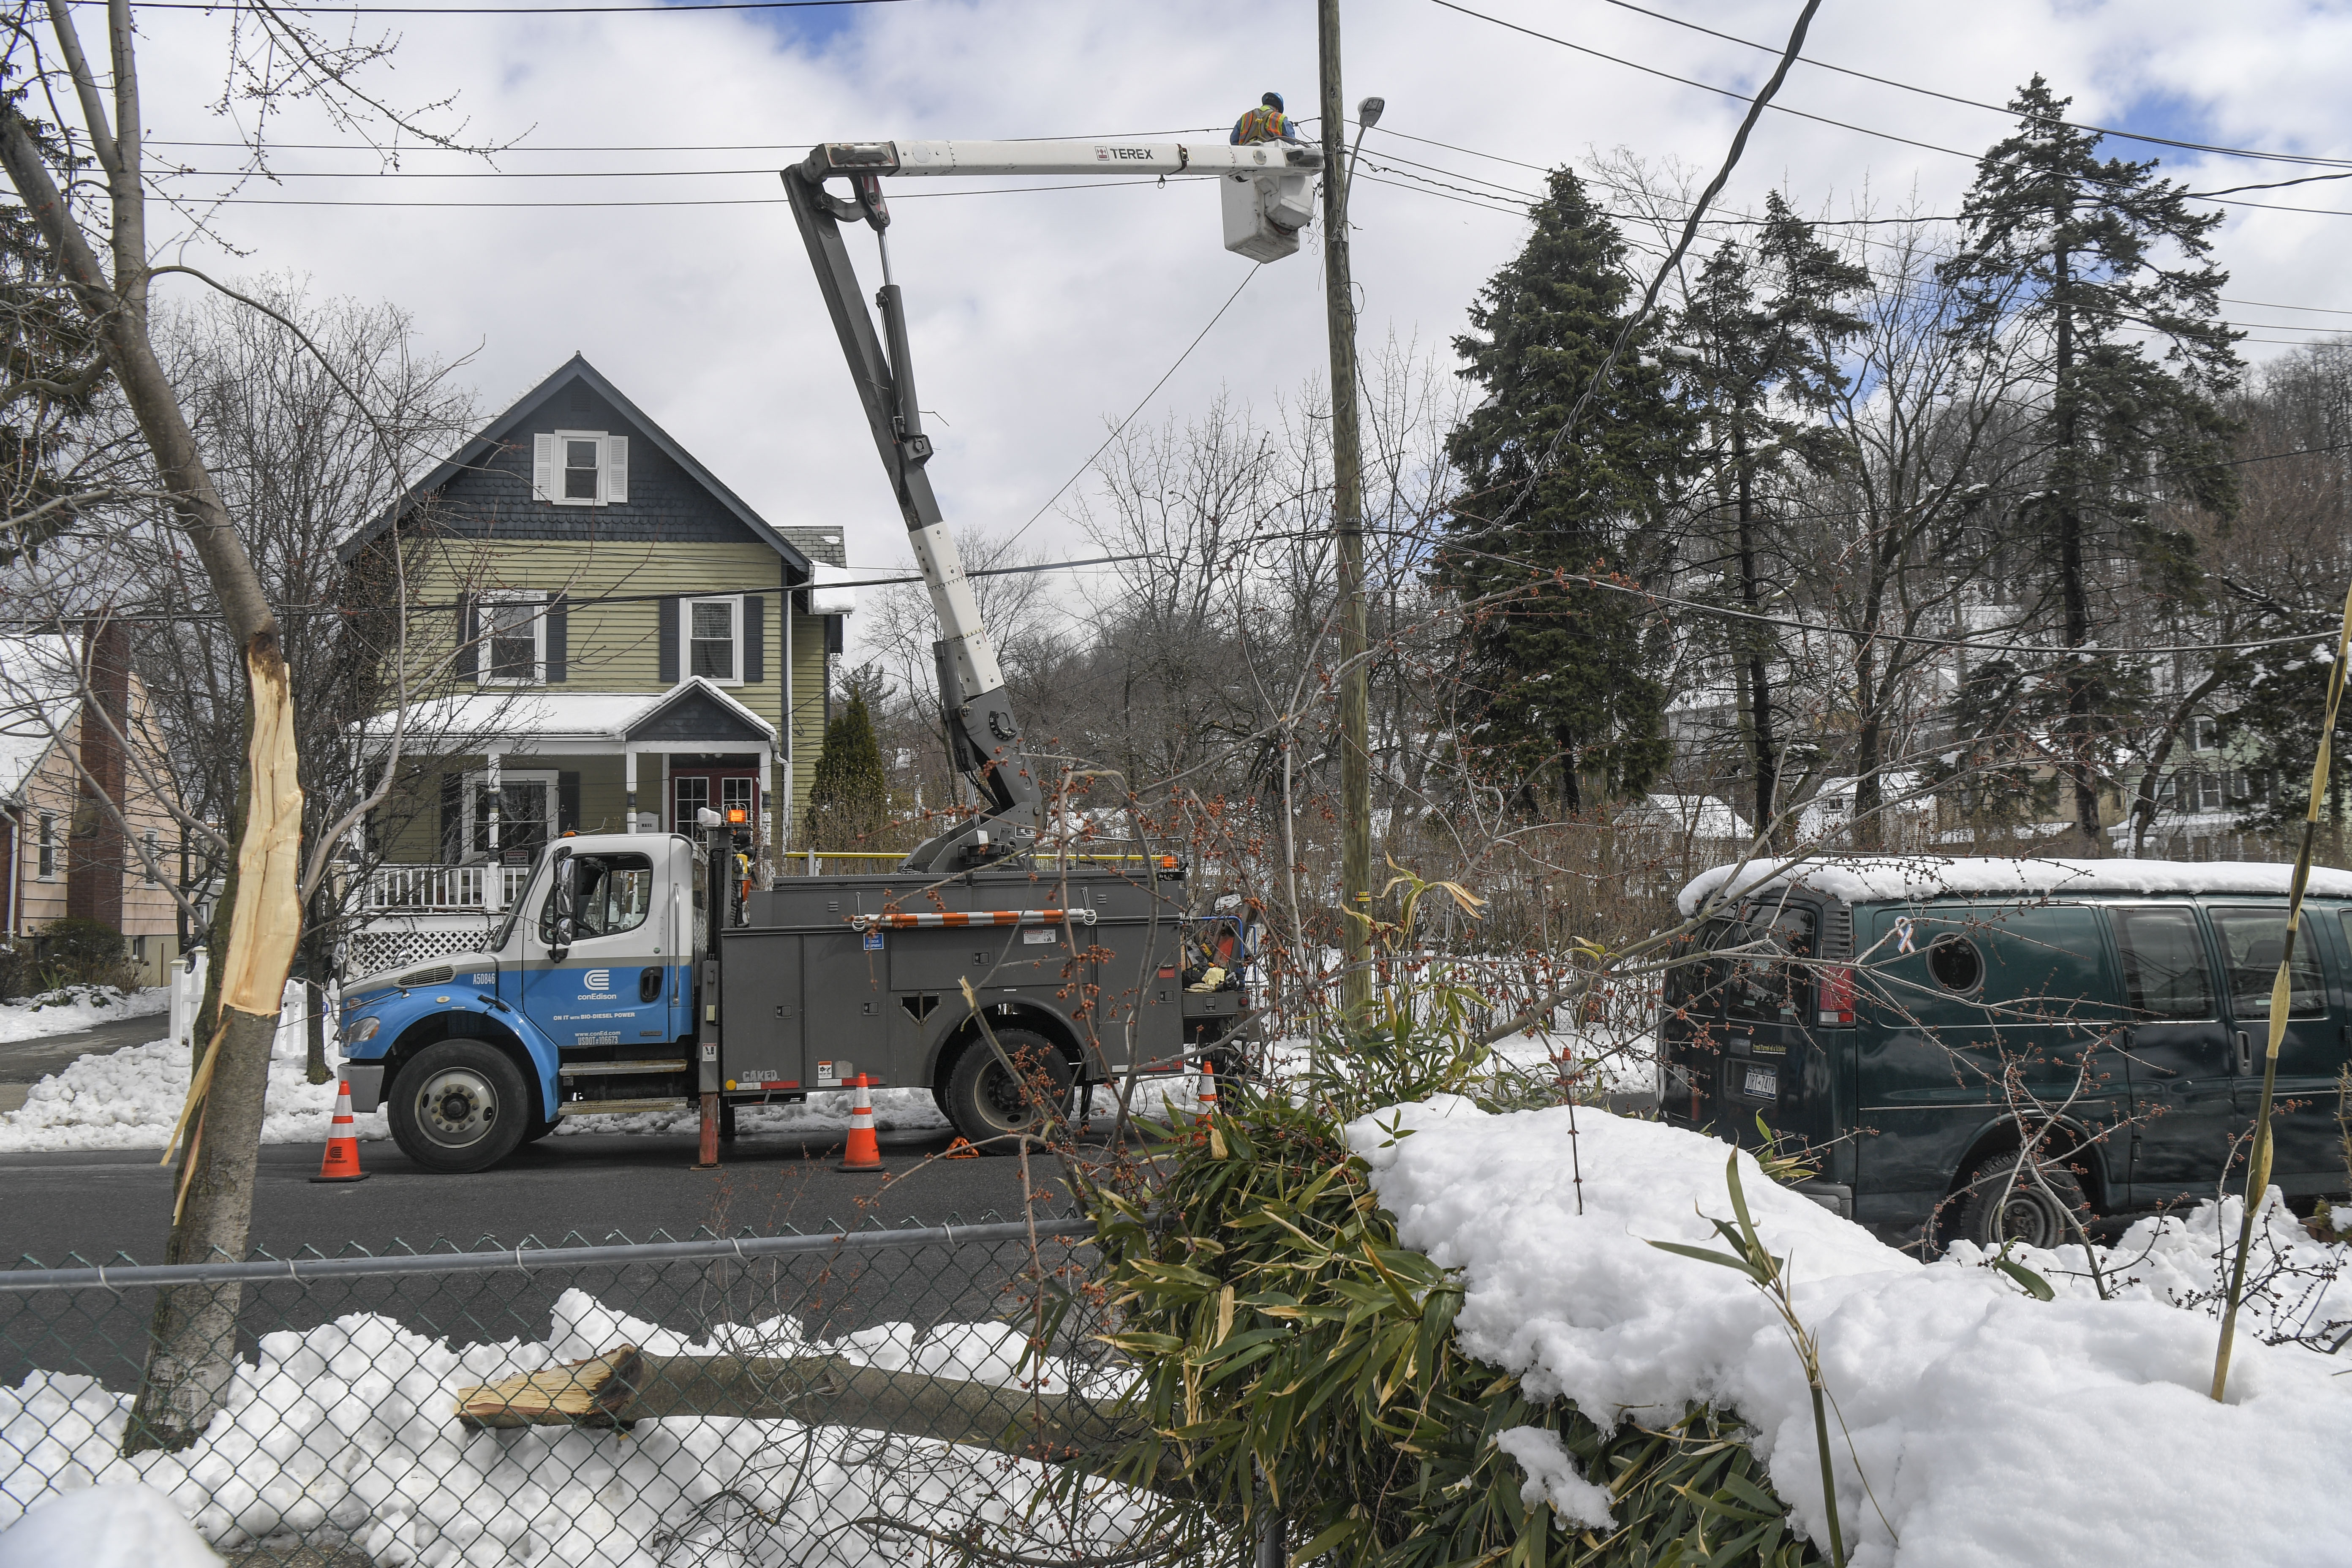 A downed tree and damaged power lines, with a Con Edison truck on the scene. Aftermath of Winter Storm Quinn.